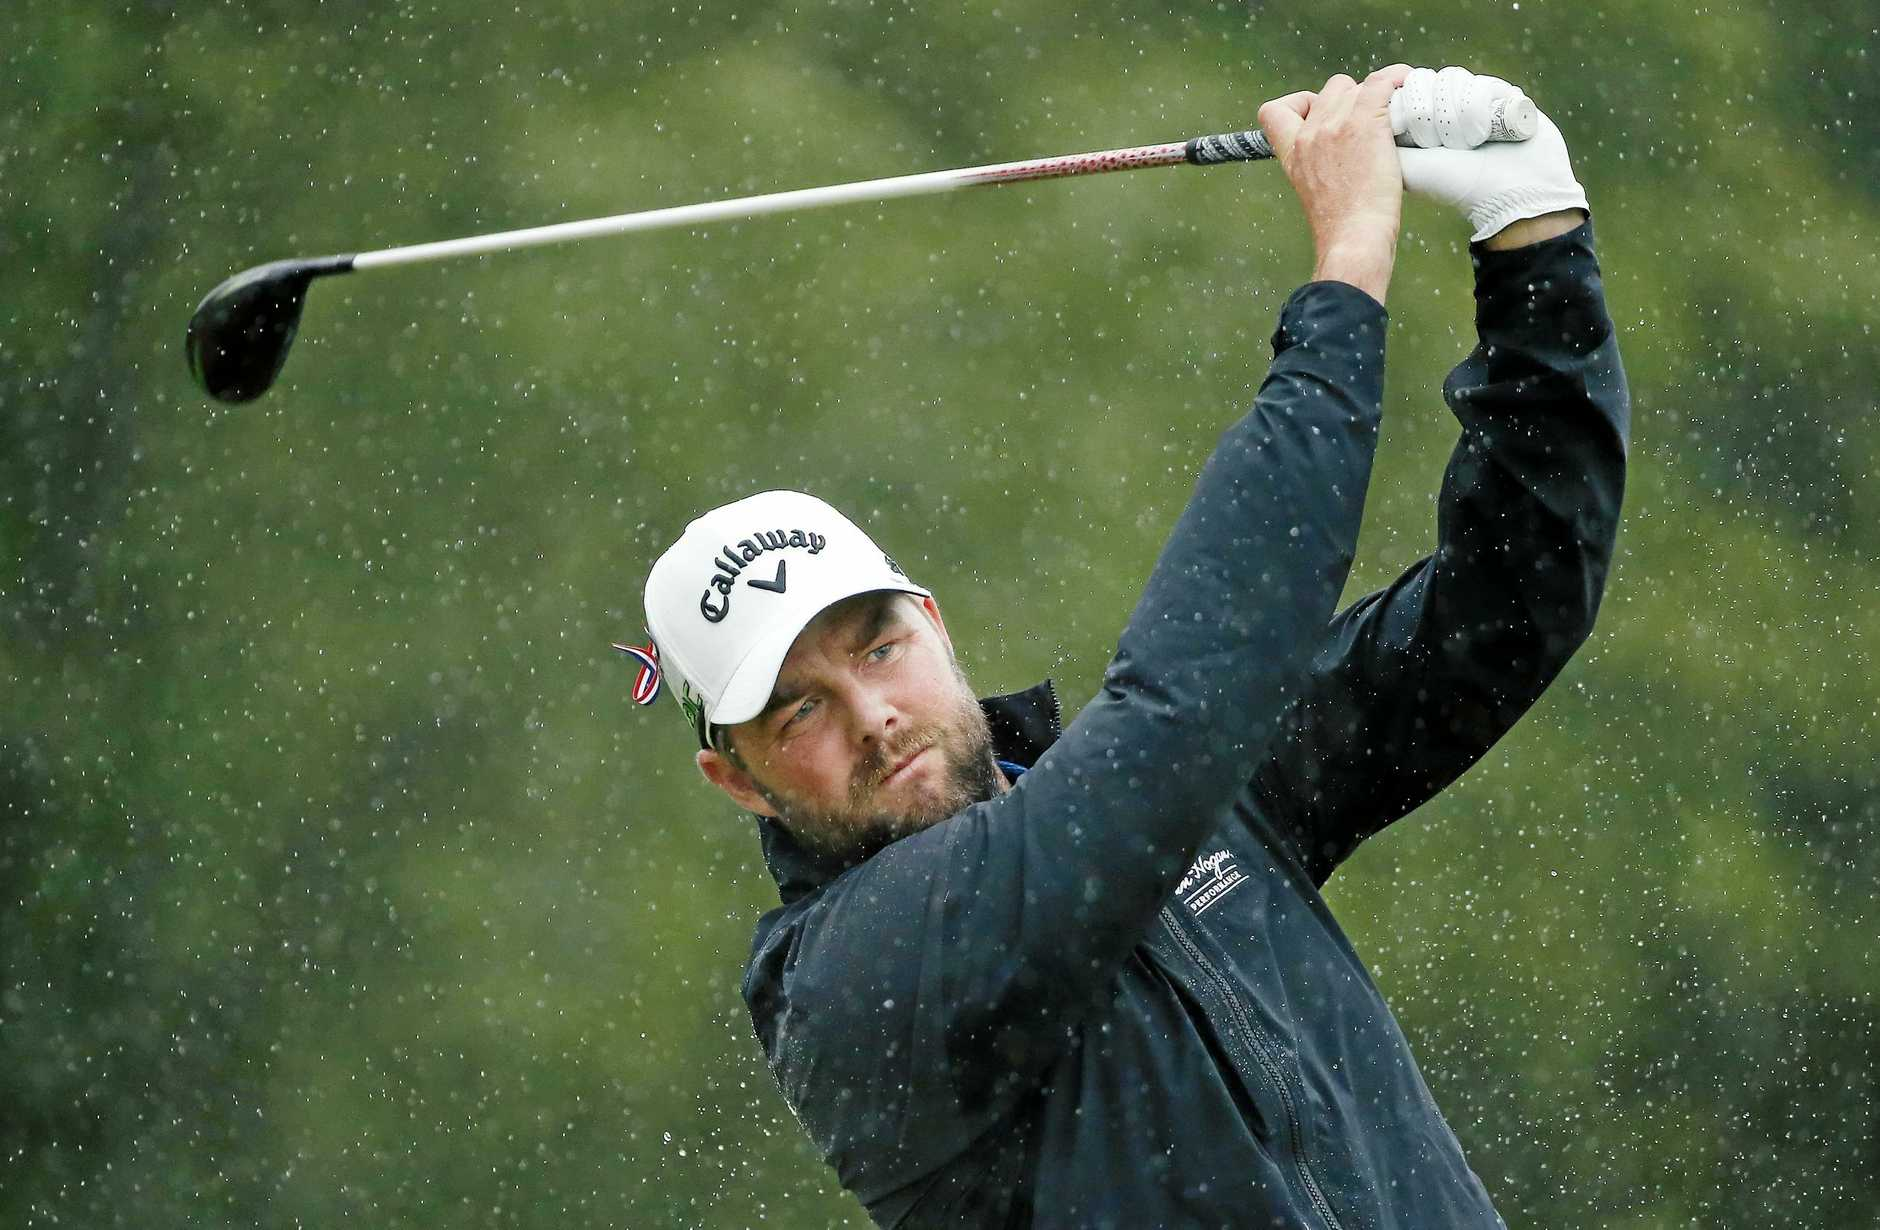 Marc Leishman tees off on the 17th at TPC Boston.